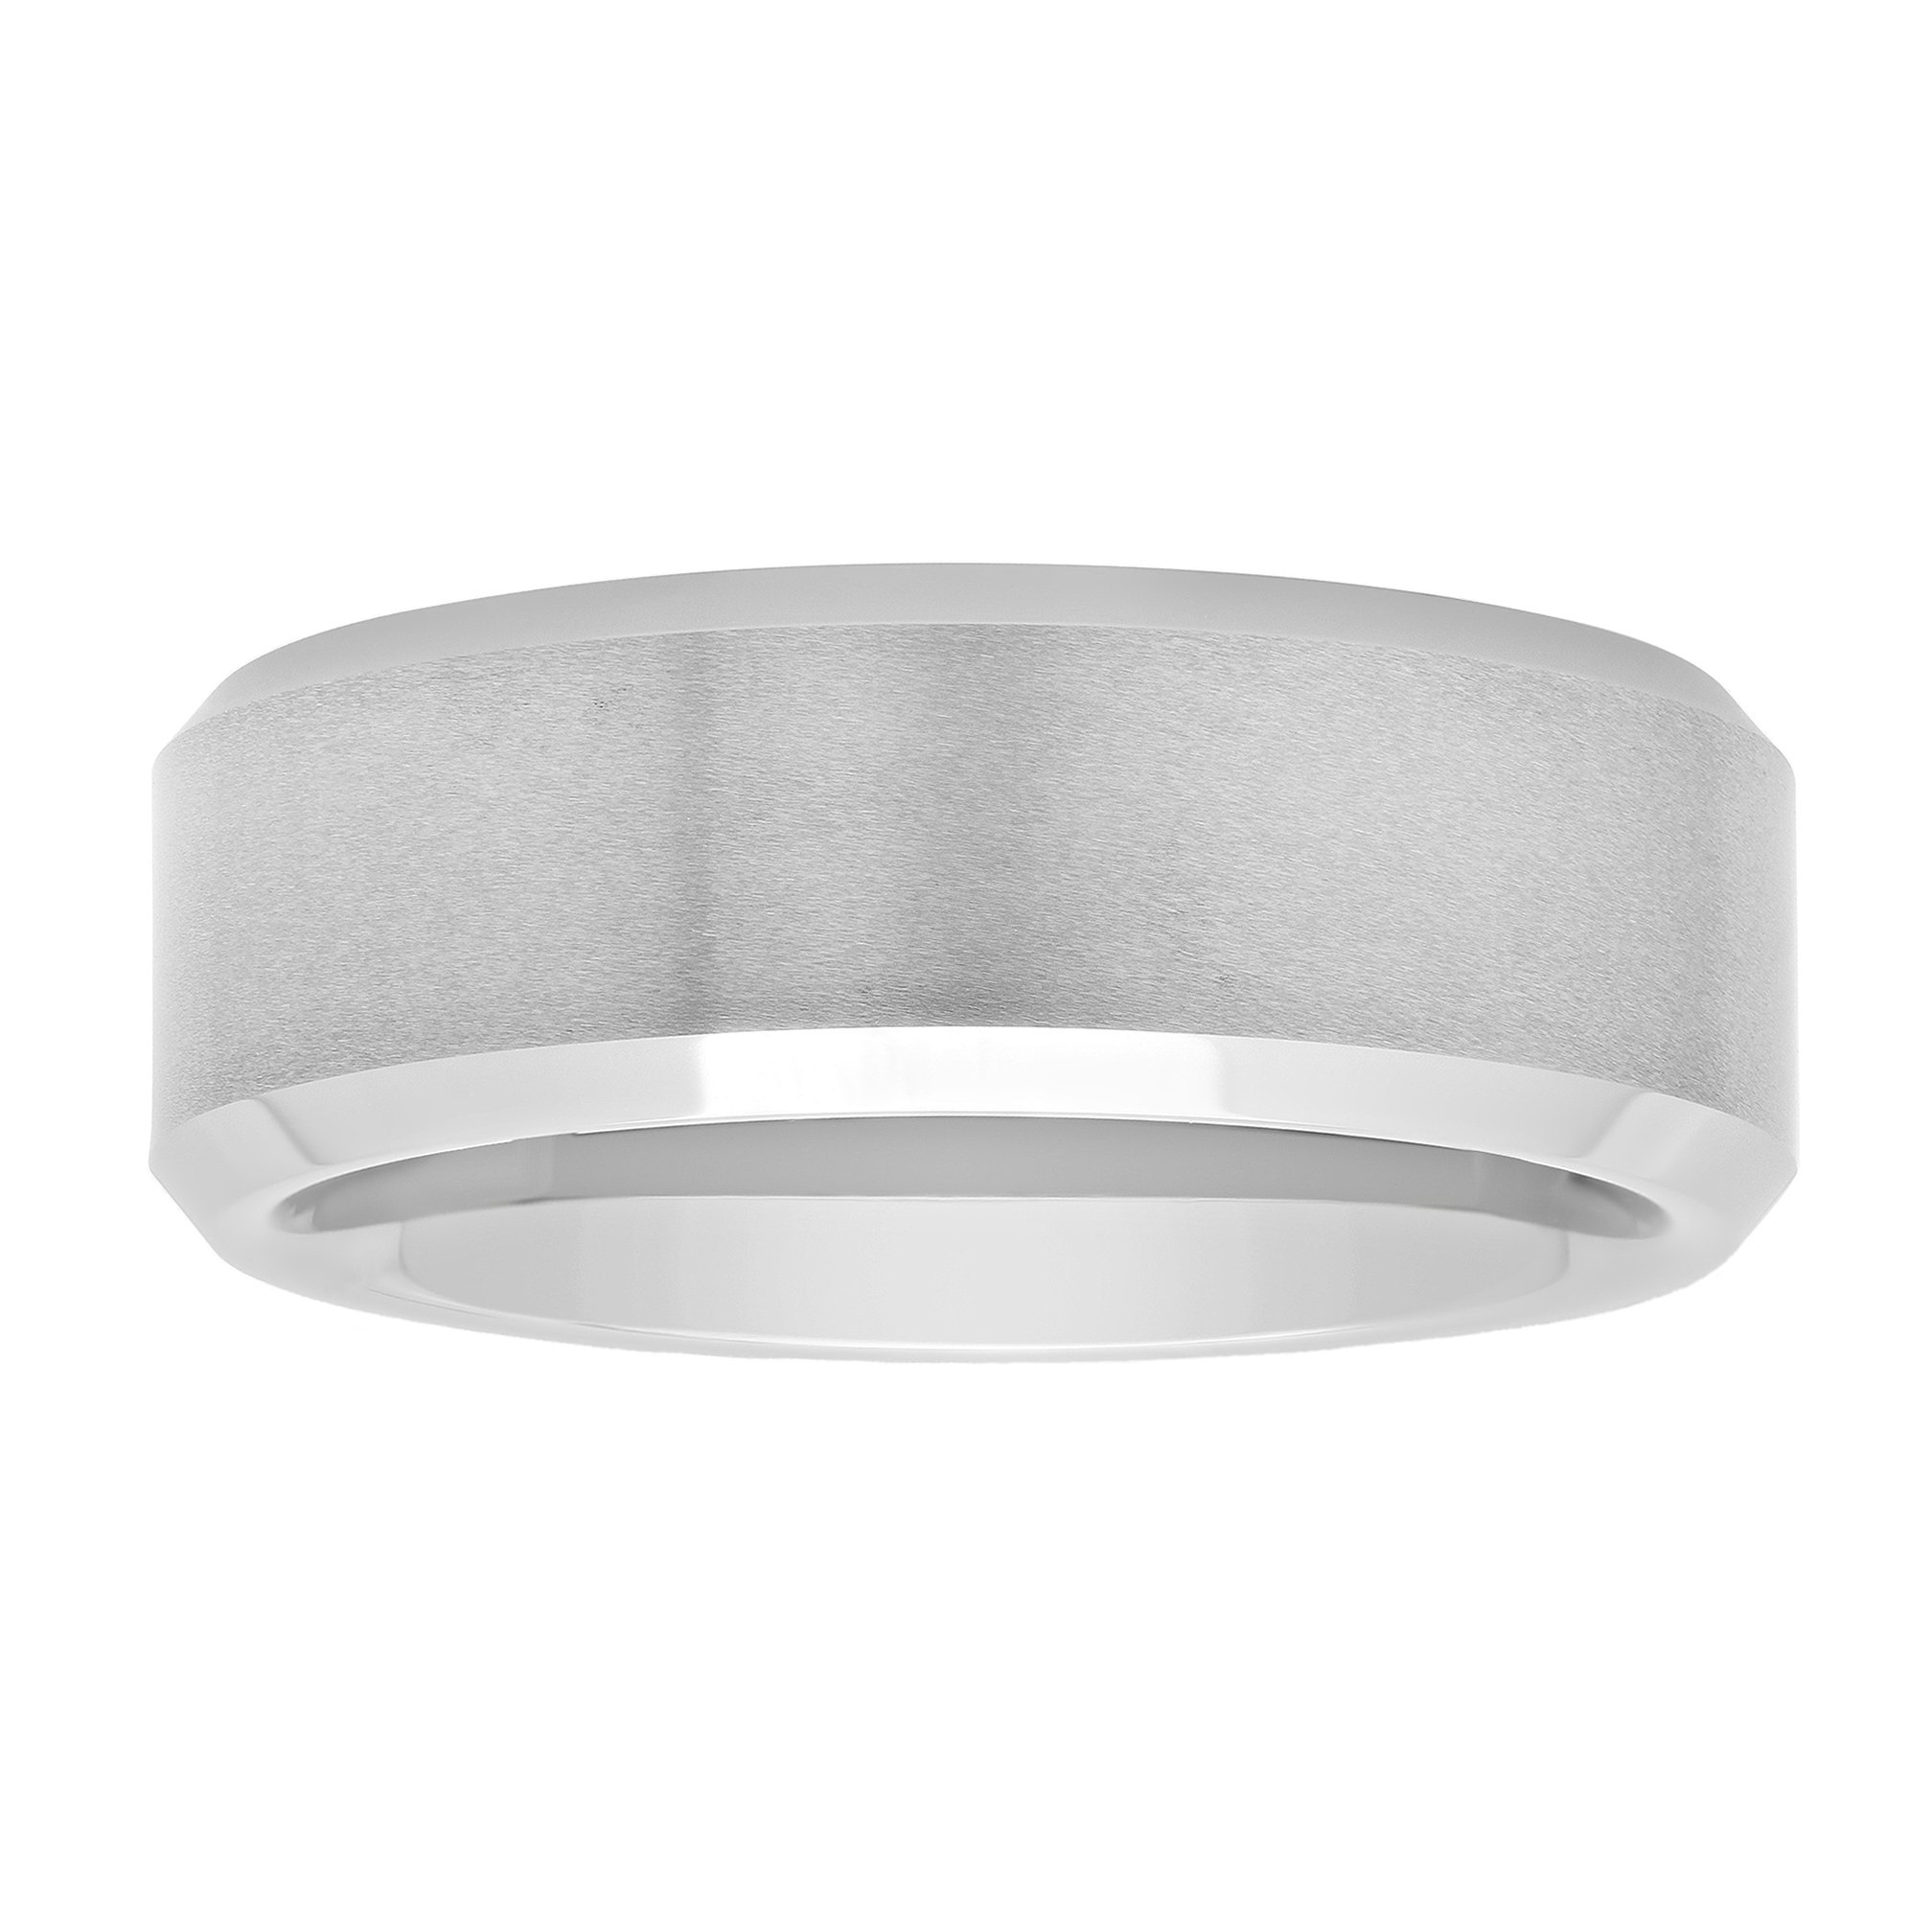 STEEL NATION JEWELRY Men's Tantalum Carbide 8mm Satin Finish Wedding Band, Mens Ring by STEEL NATION JEWELRY